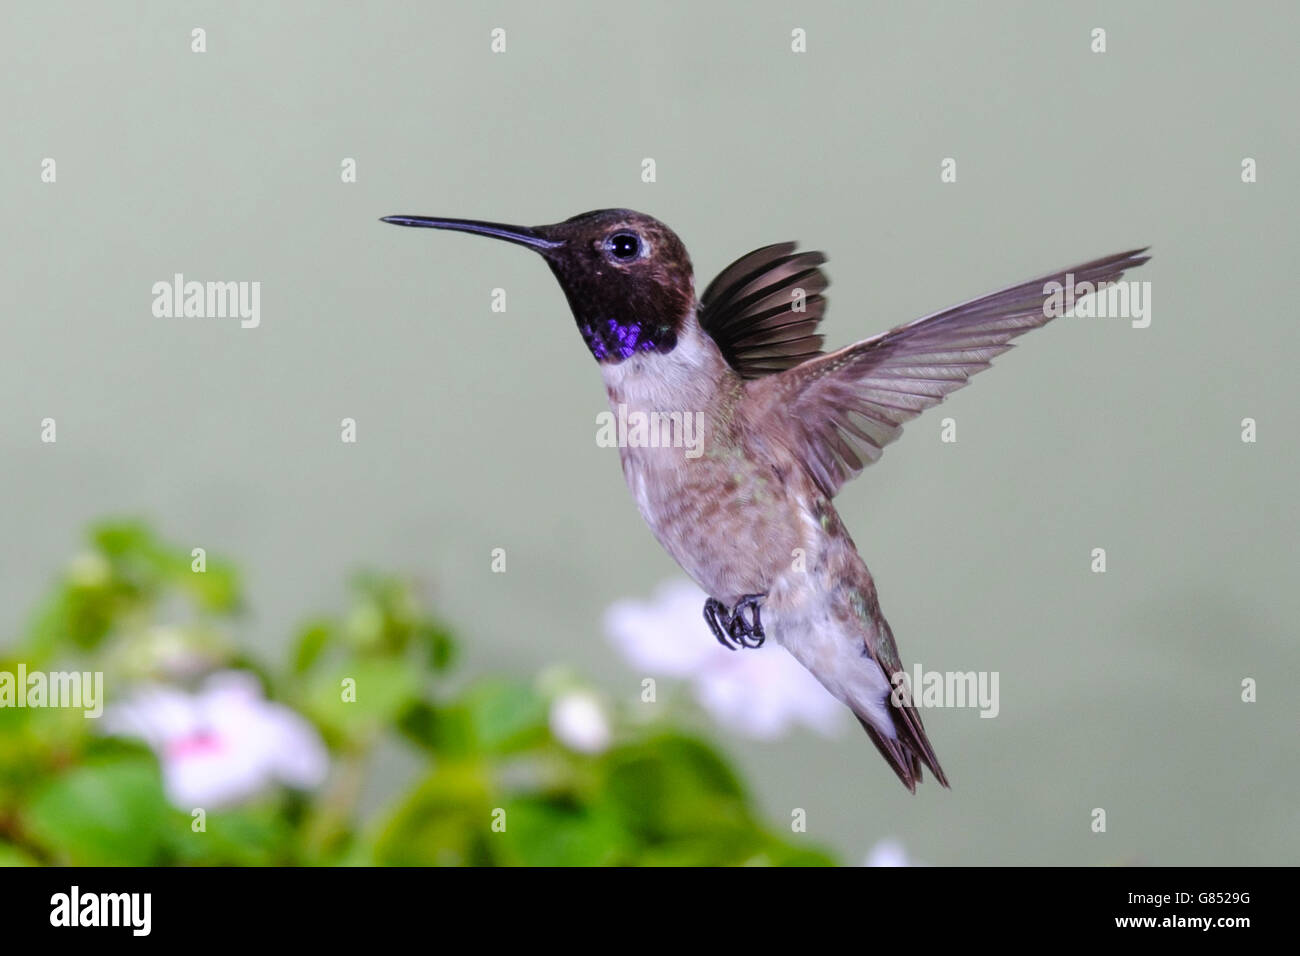 black-chinned-hummingbird-archilochus-alexandri-male-frozen-in-flight-G8529G.jpg